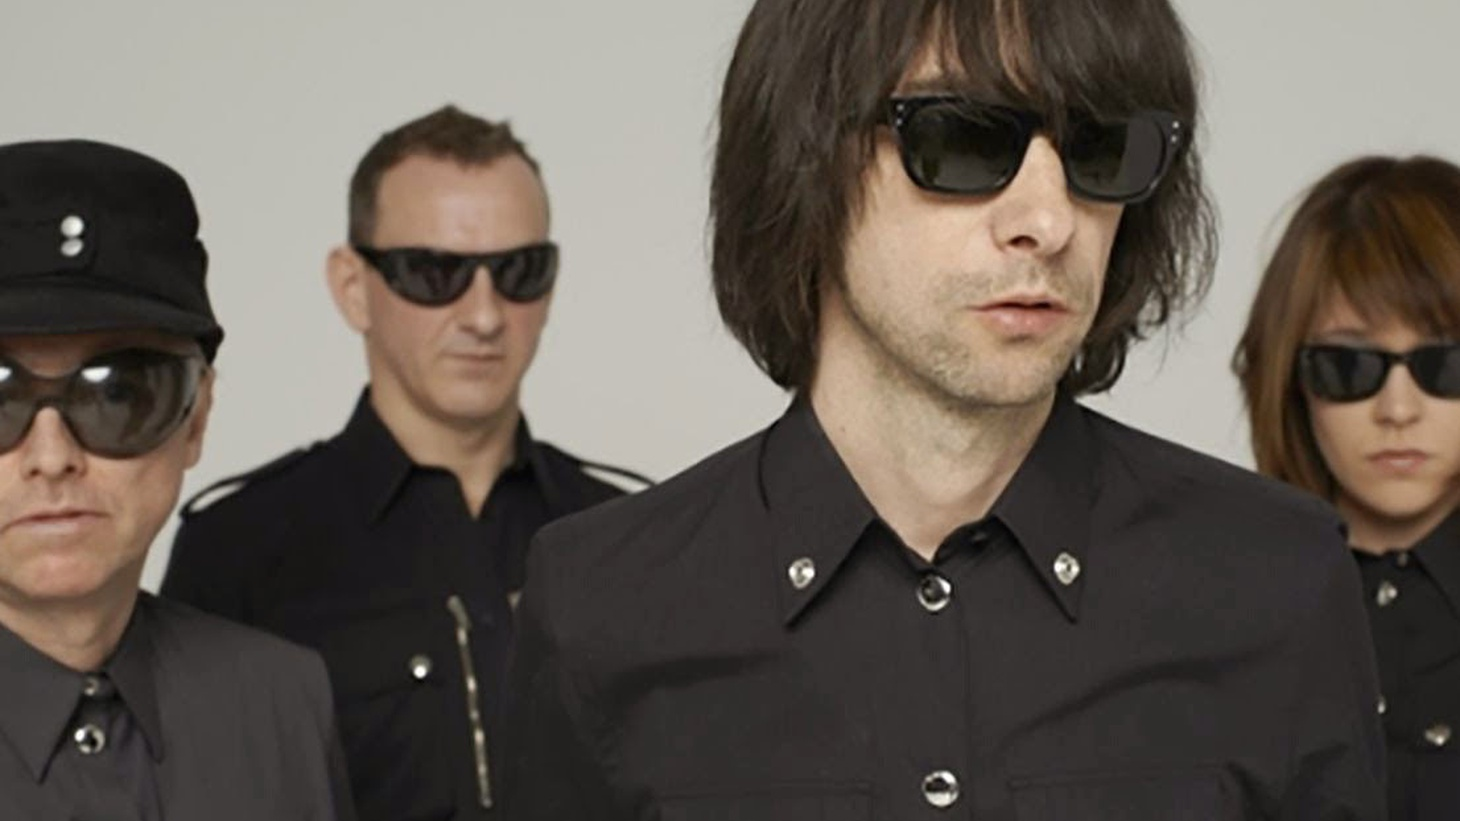 Scottish rockers Primal Scream bring psychedelic blues inflected with 60s vibes to our studio for a live set.